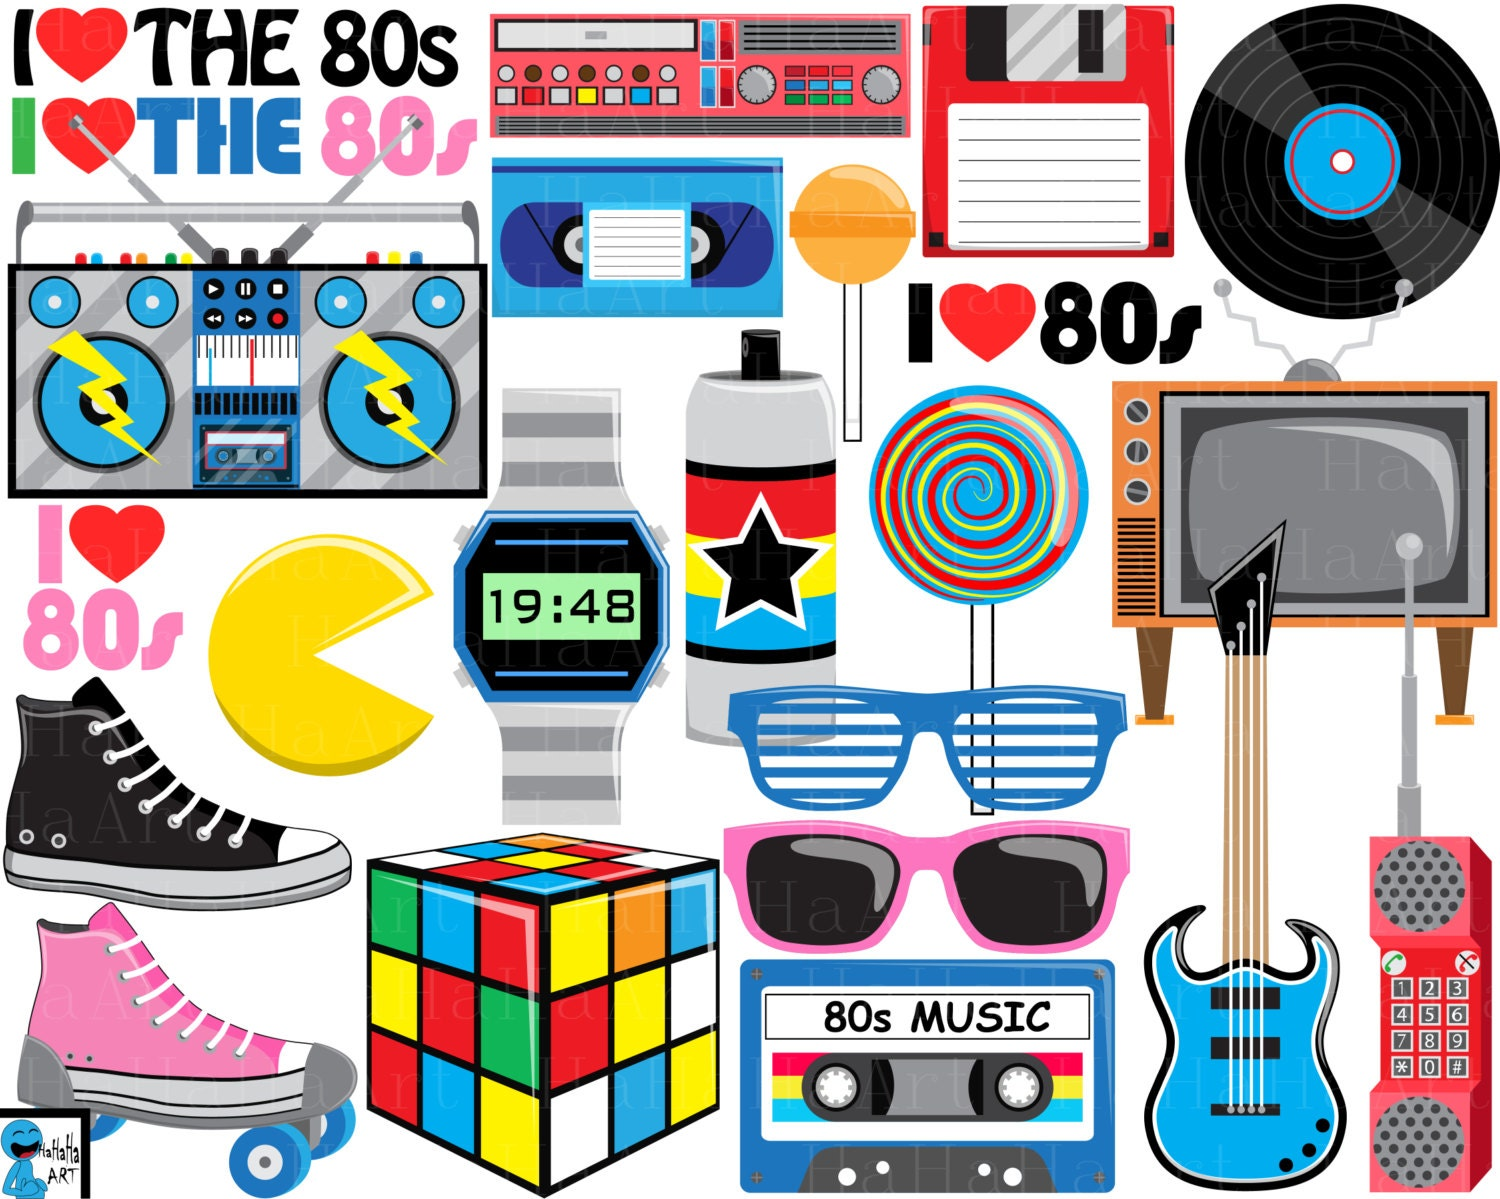 I Love The 80s Toys : S clipart pixshark images galleries with a bite